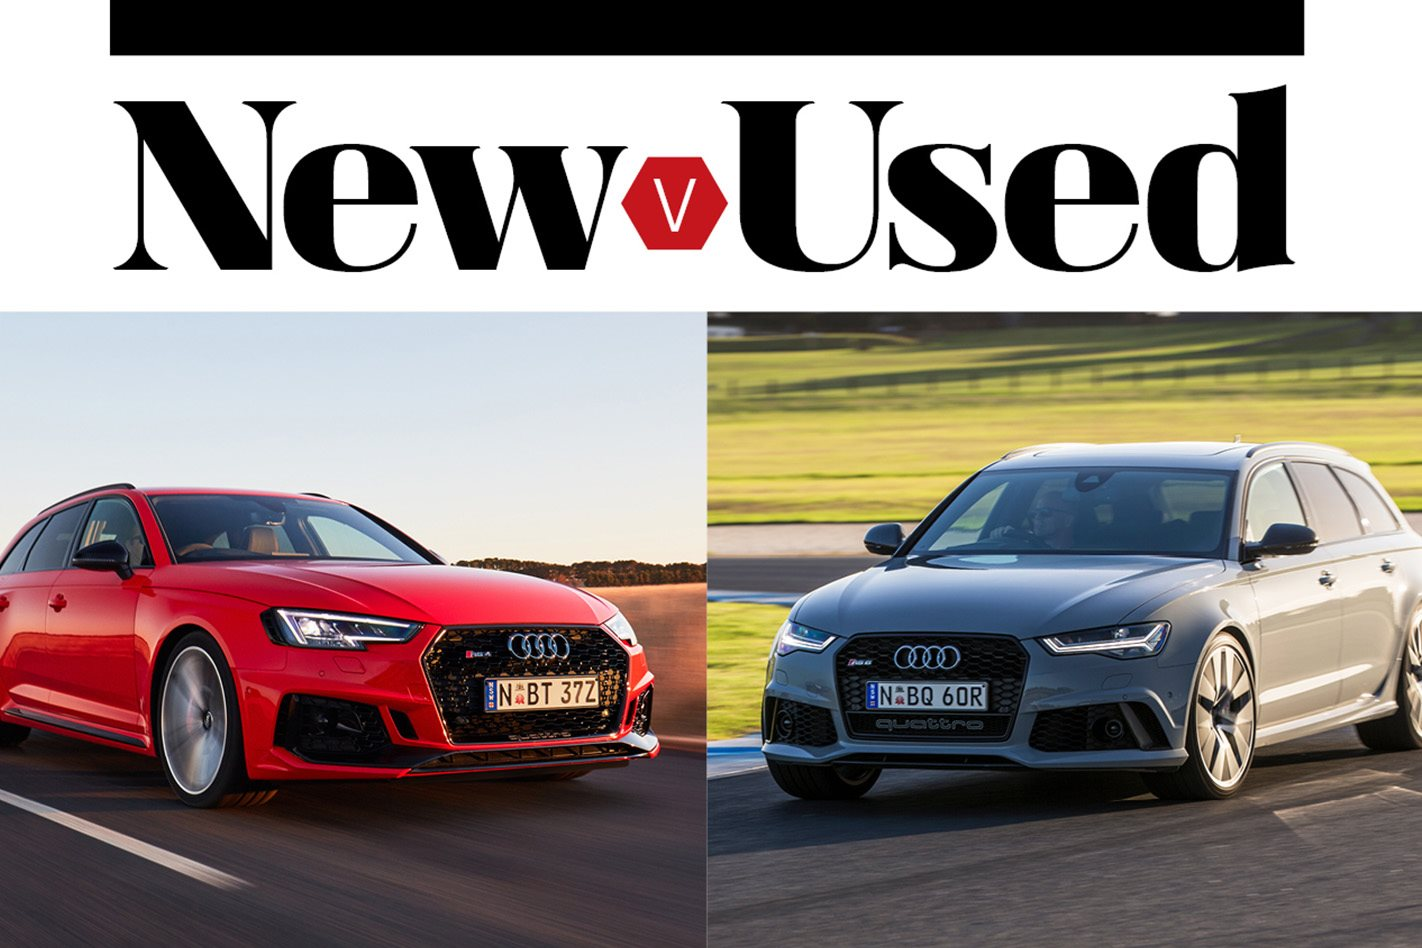 New vs Used: Buy the new Audi RS4 Avant or get a used Audi